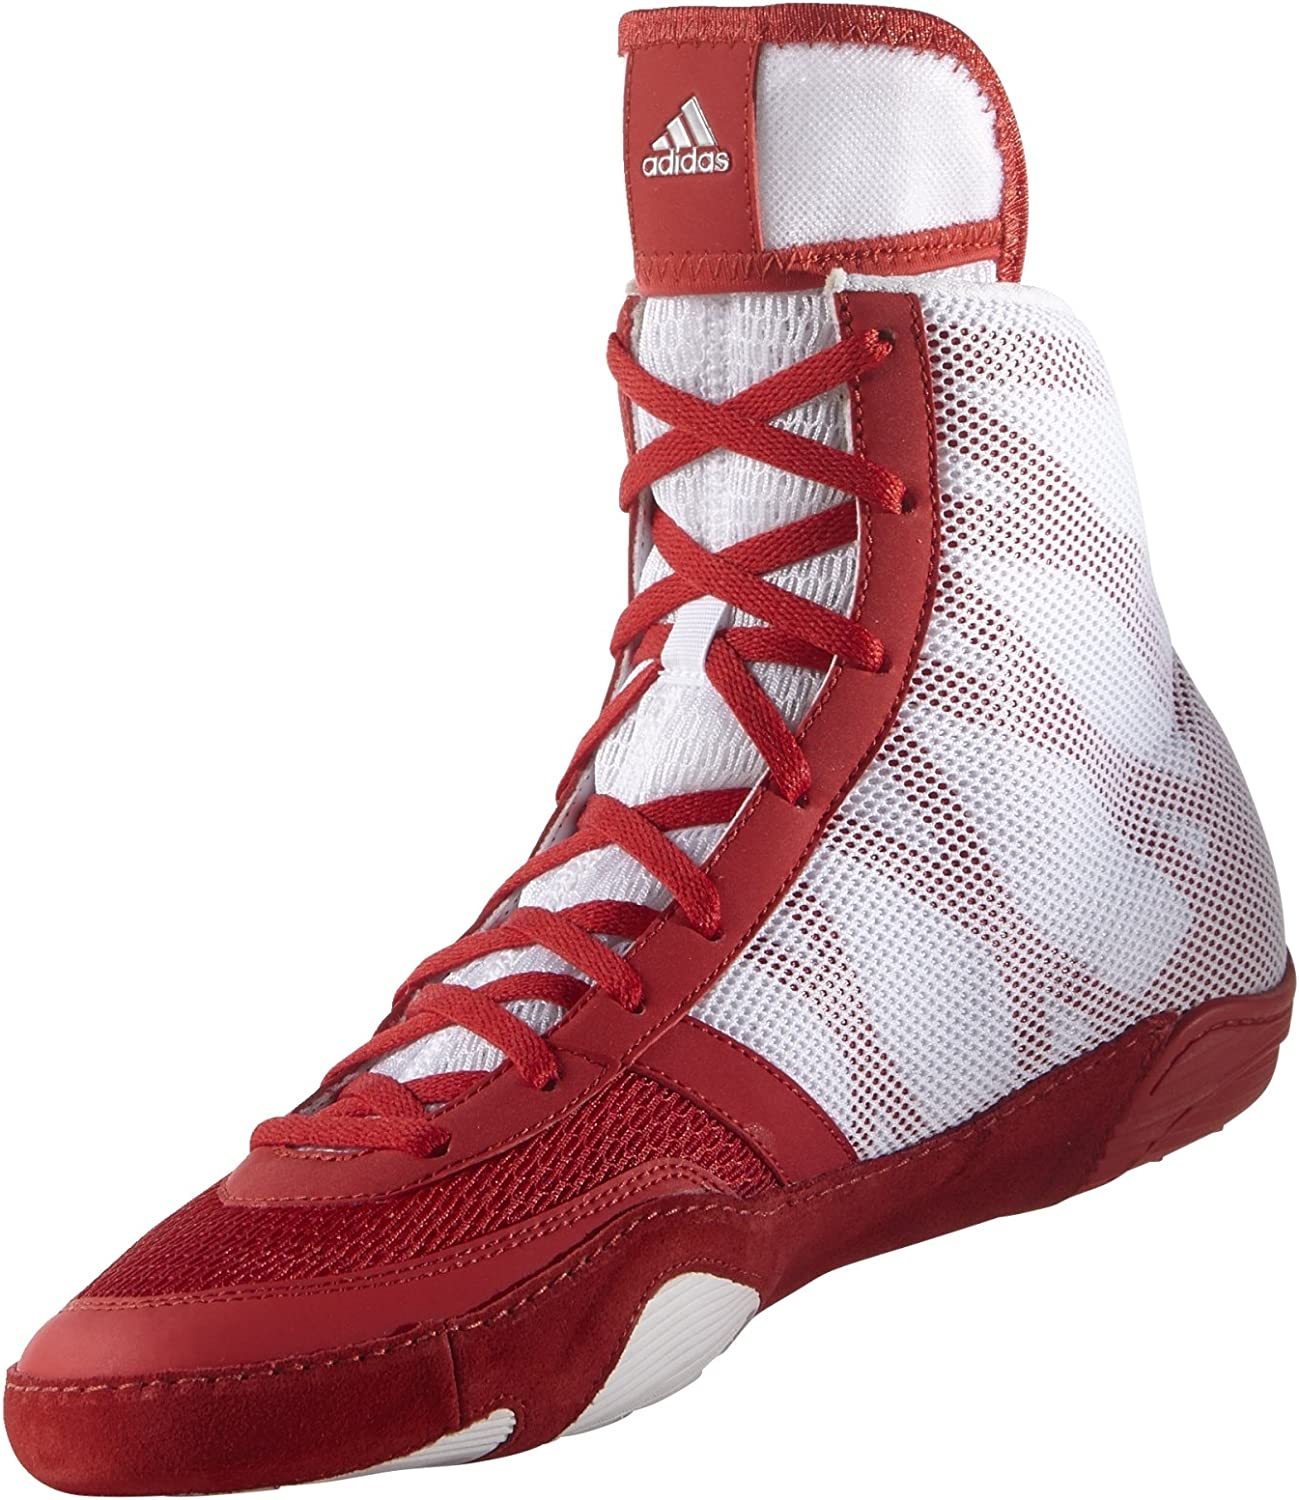 Adidas Pretereo III Wrestling shoes - Red Silver White - 8.5